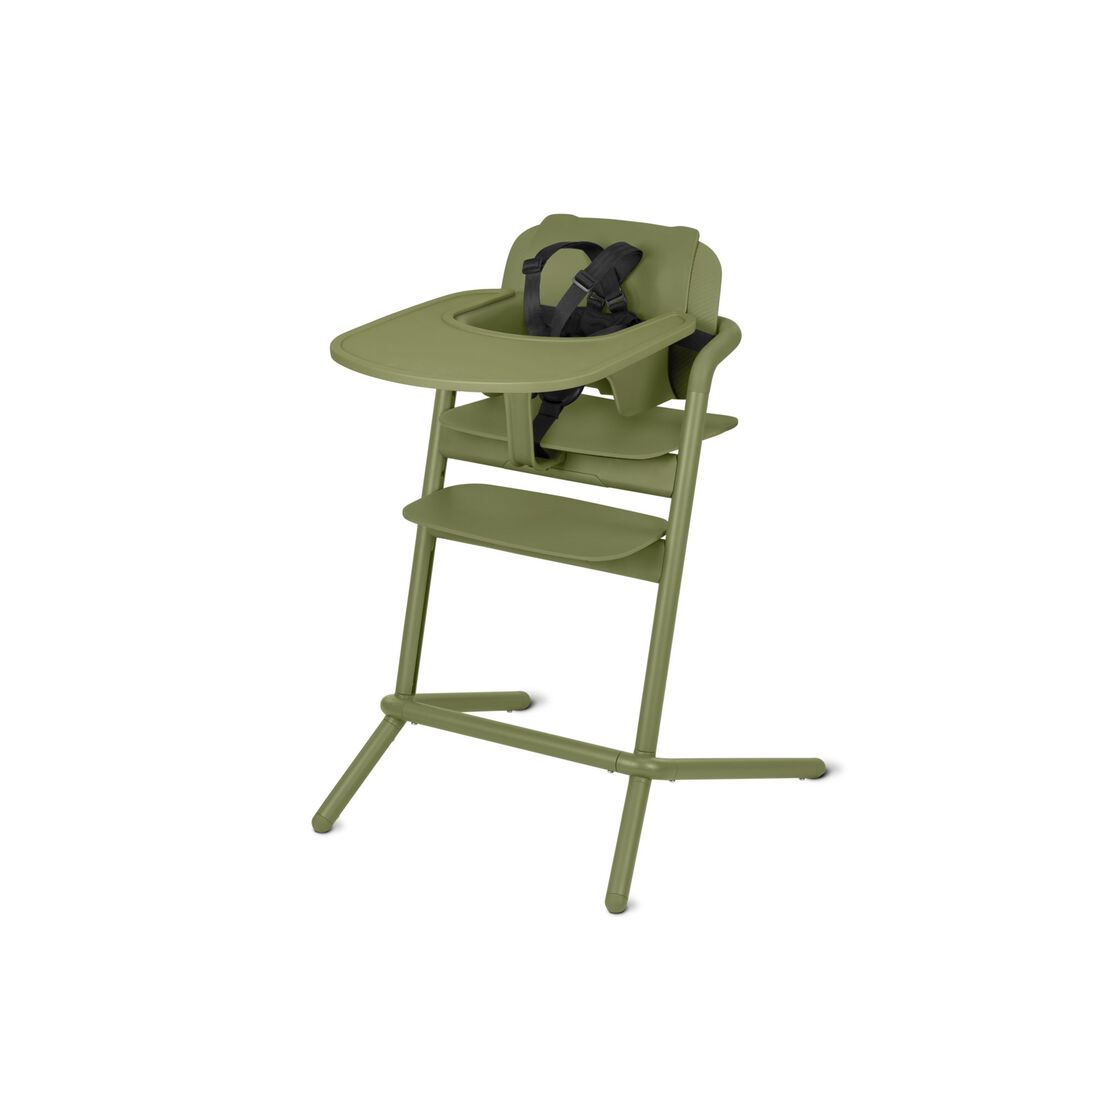 CYBEX Lemo Tray - Outback Green in Outback Green large image number 2